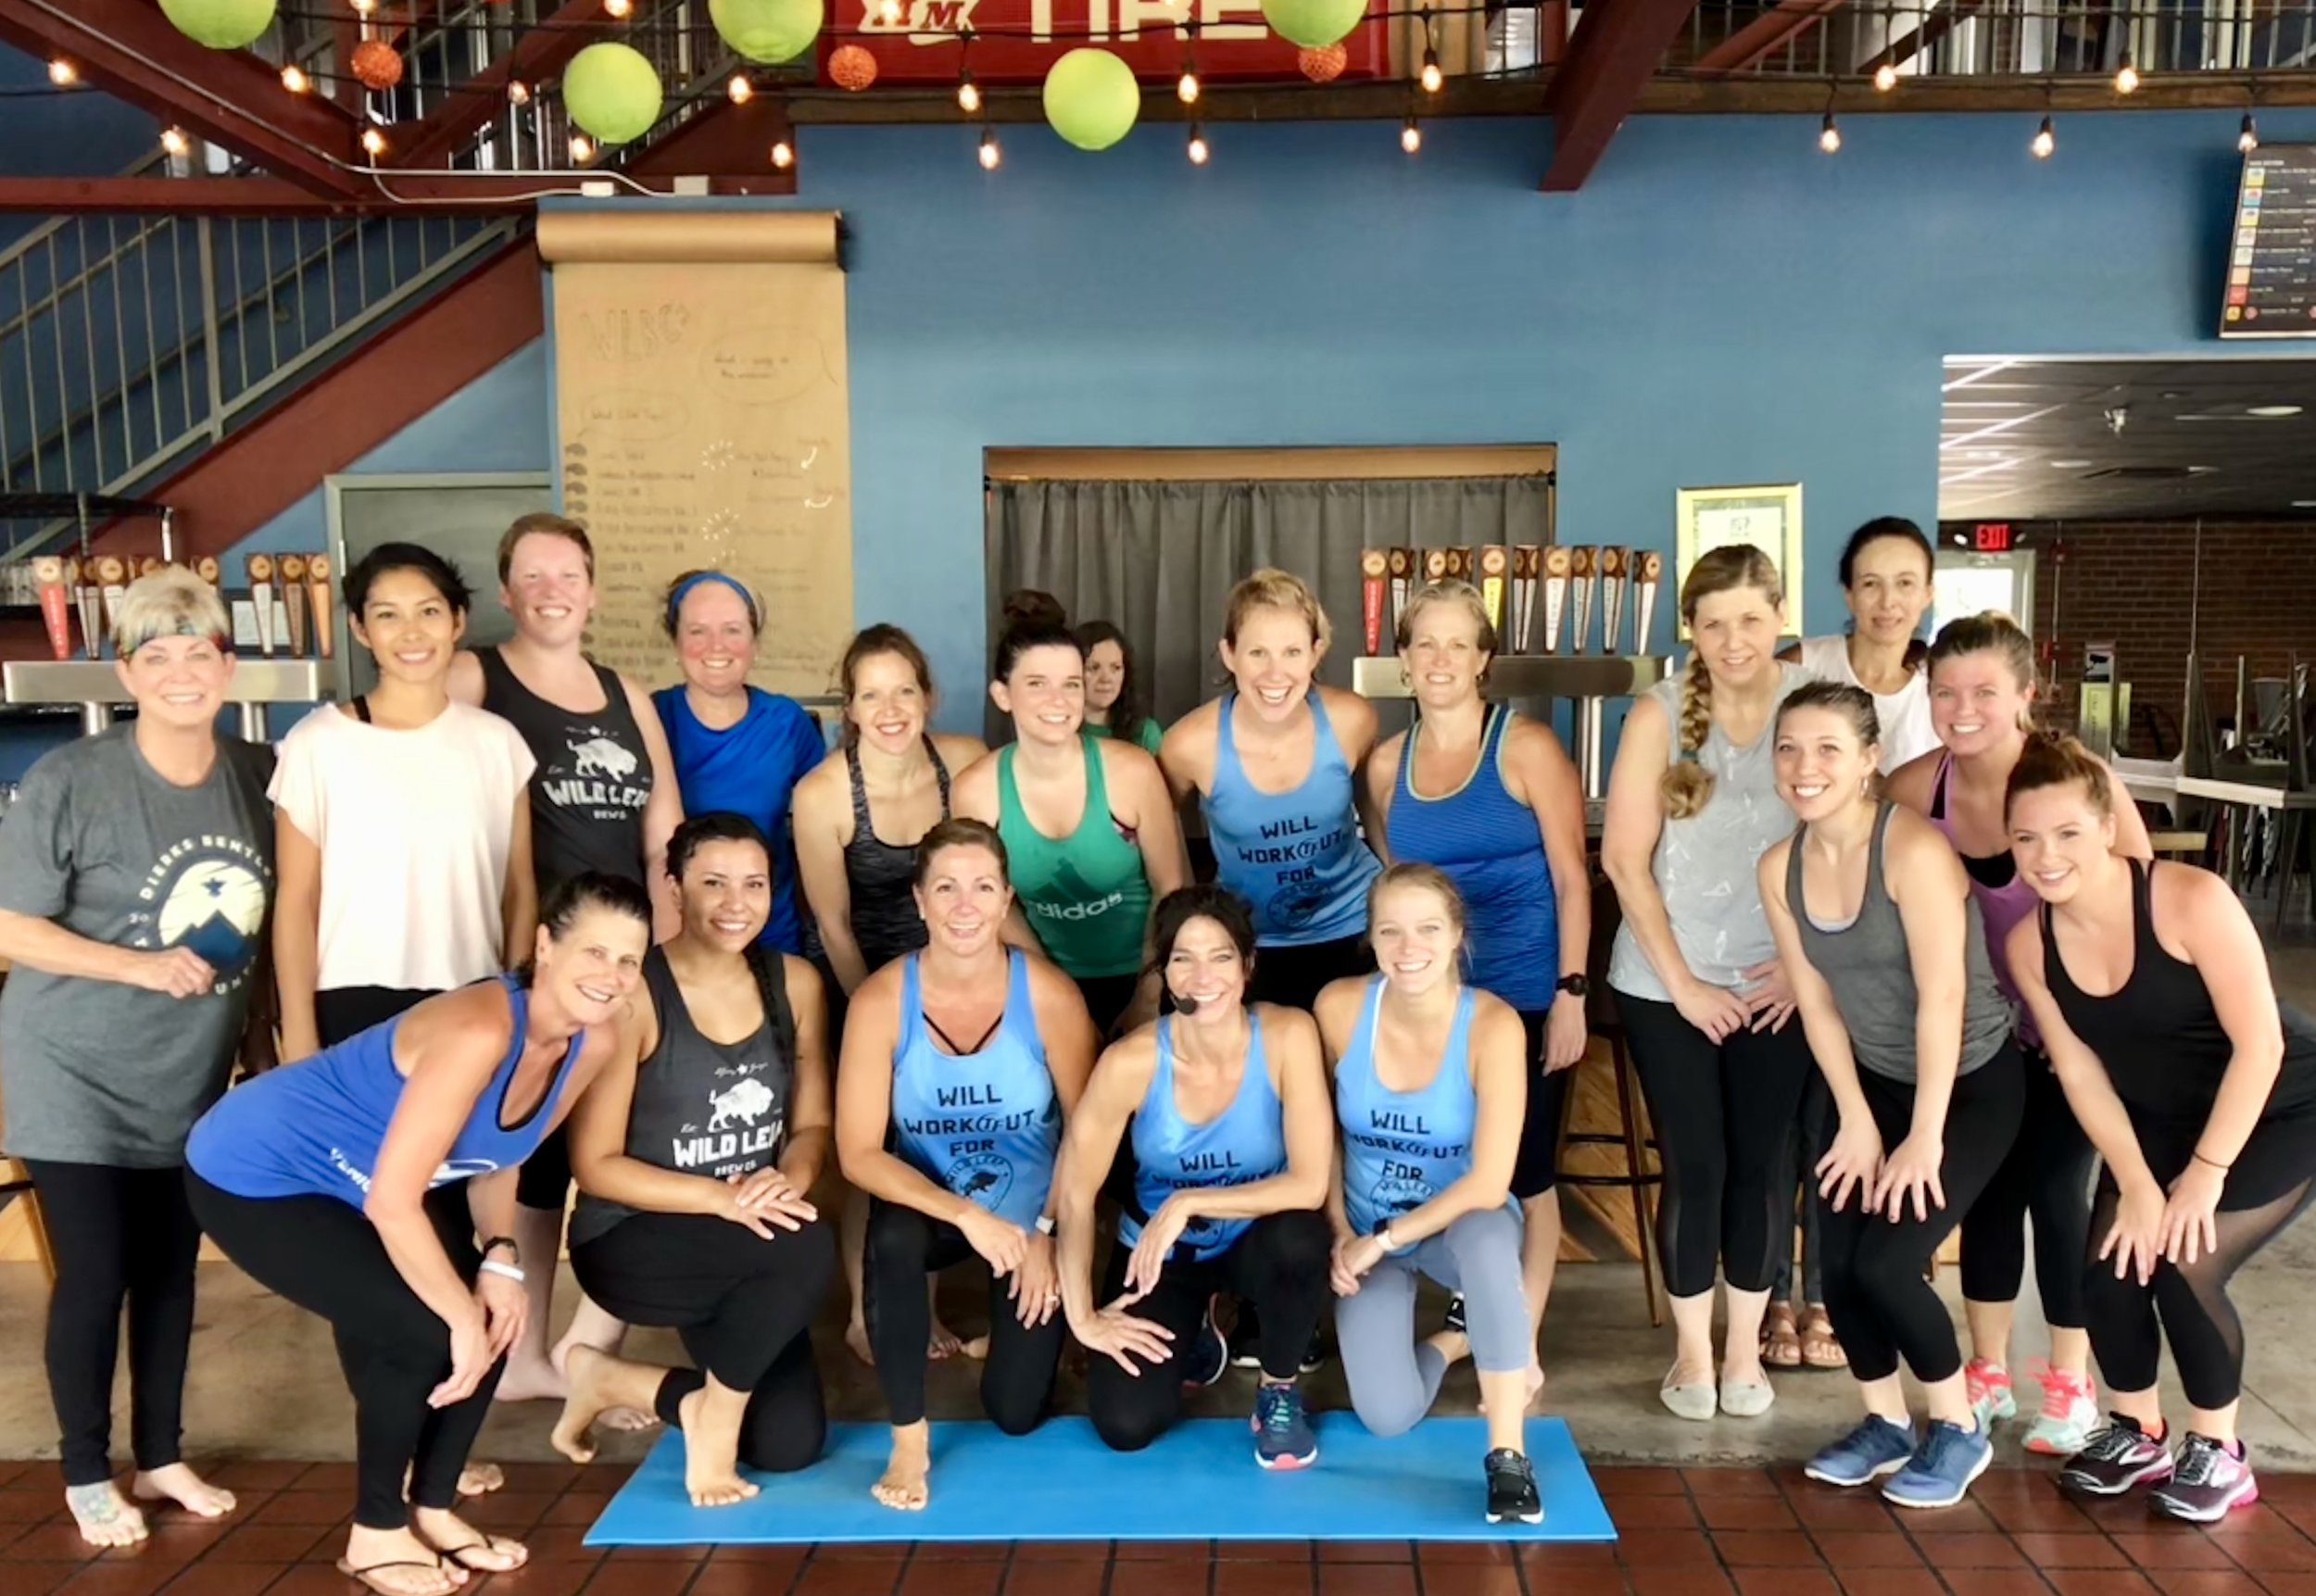 These amazing ladies made PiYo! look so pretty on Saturday August 18th! Hopefully they will all be back for Fit Fest next Sunday, August 26th from 1:30-5:00 PM!